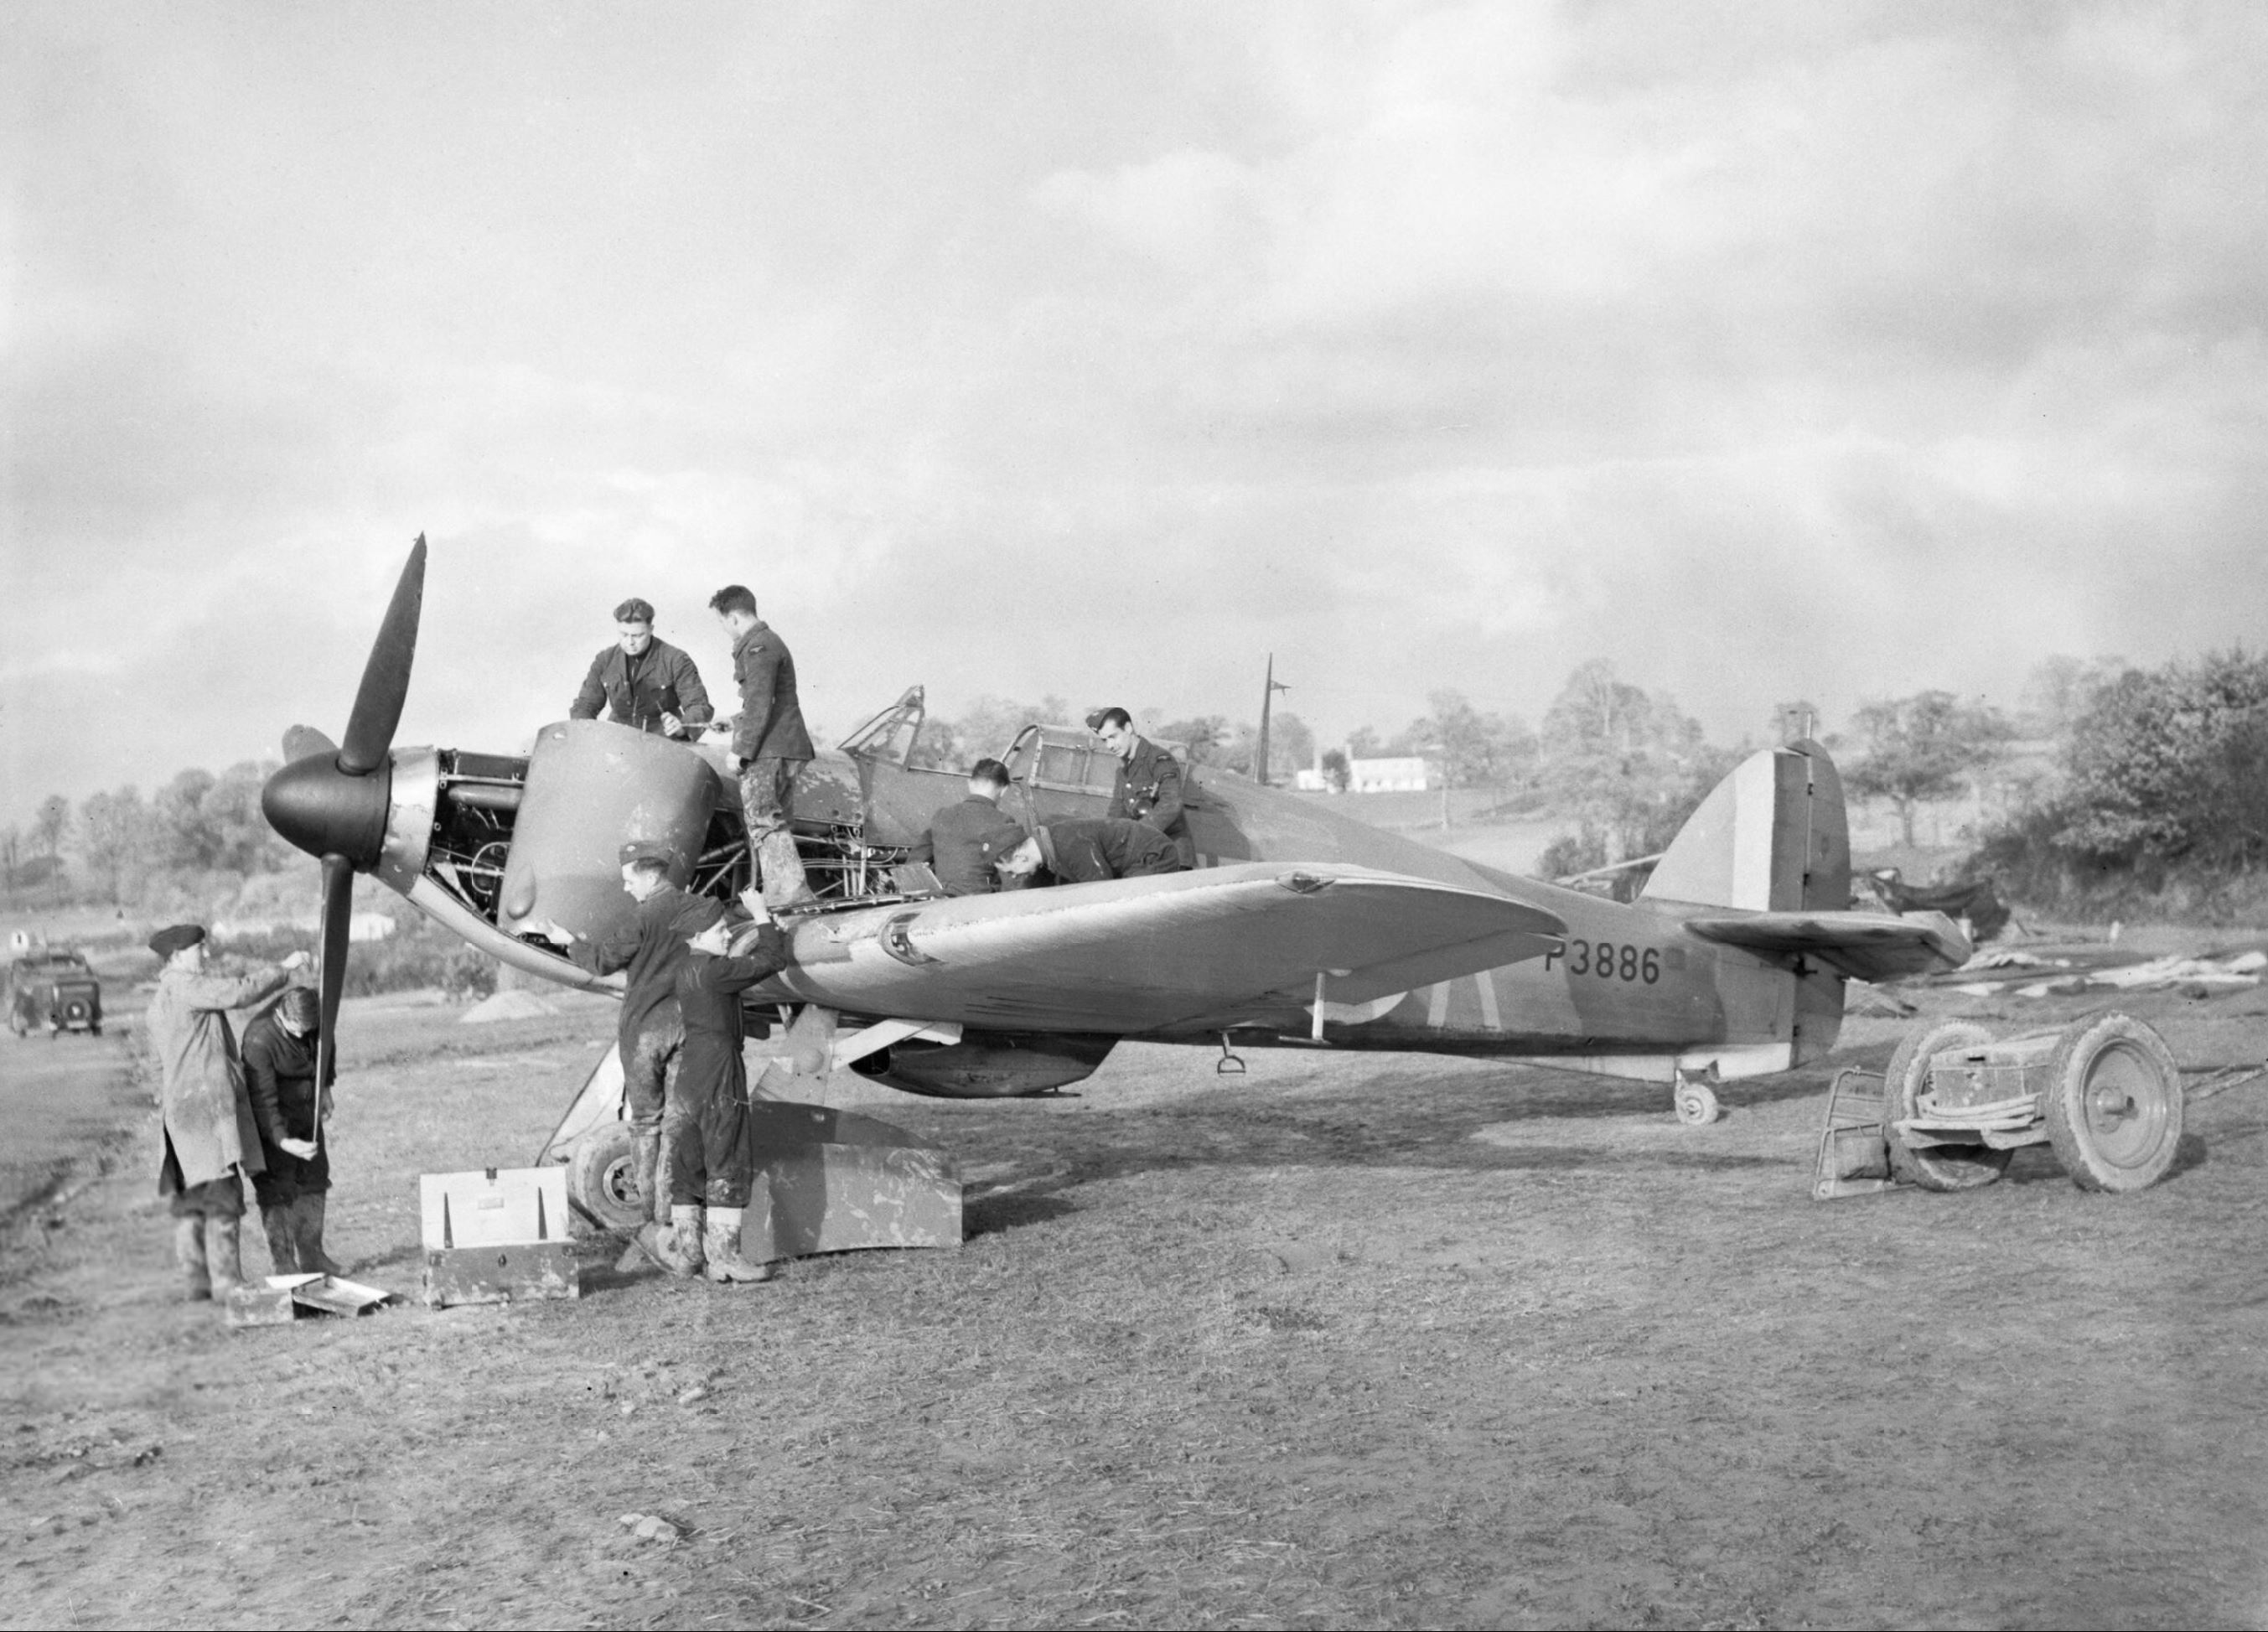 Hurricane I RAF 601Sqn UFK P3886 previously flown by HJ Riddle being repaired at RAF Exeter 1940 IWM C1638